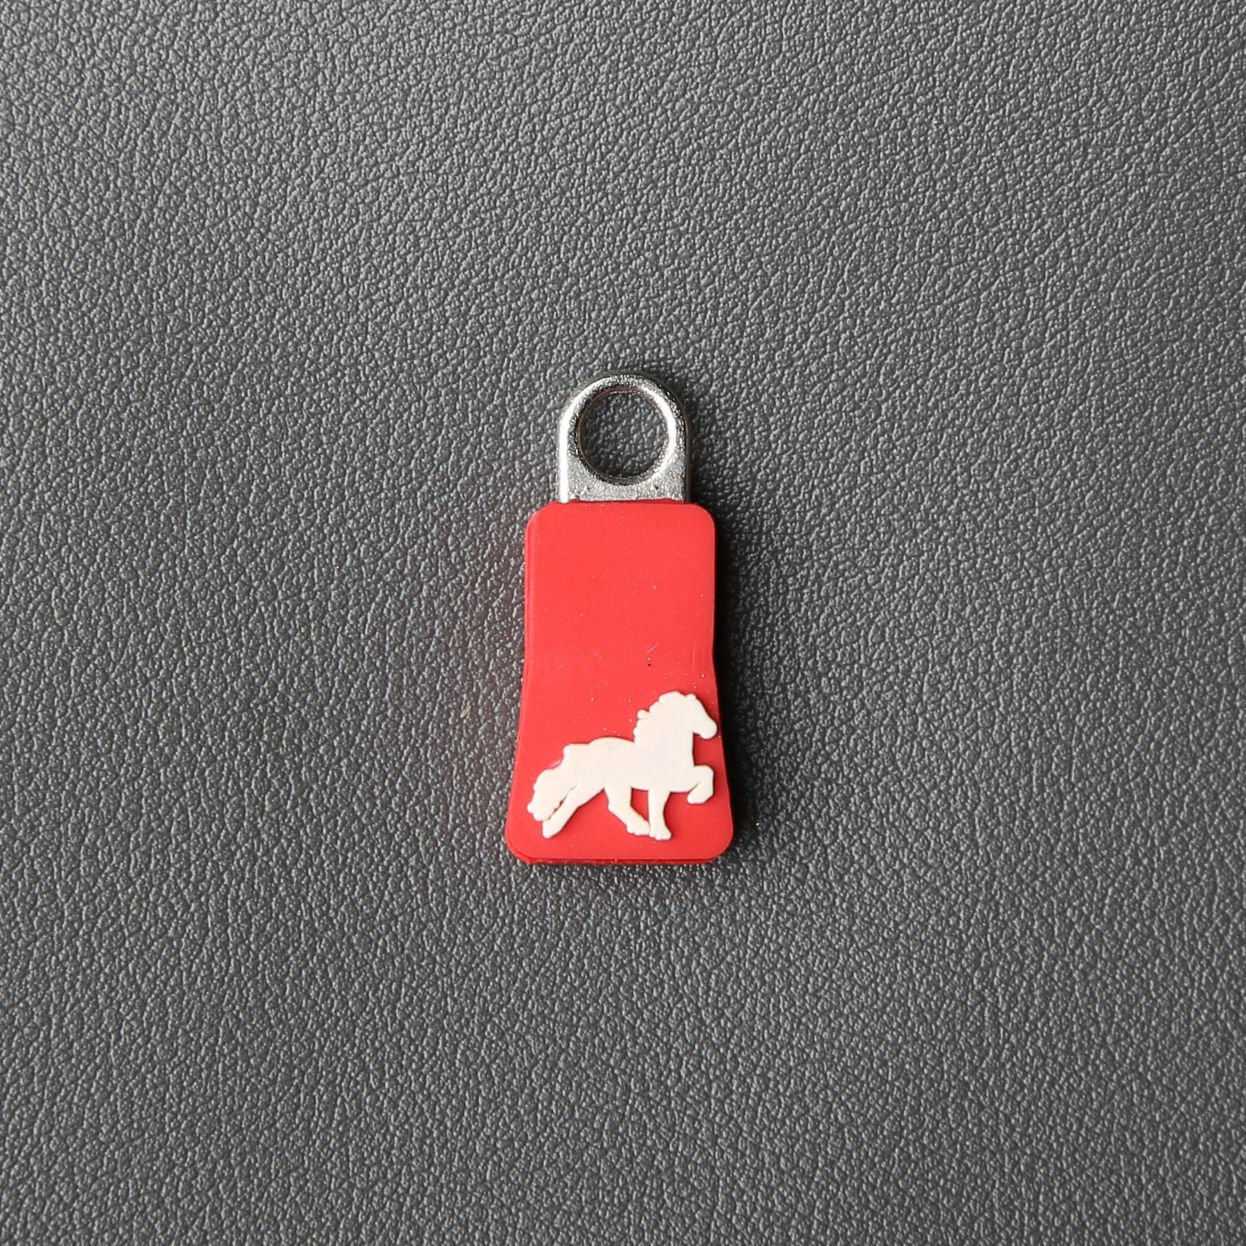 Seal tags suppliers, Seal tags manufacturer, Security seal tag